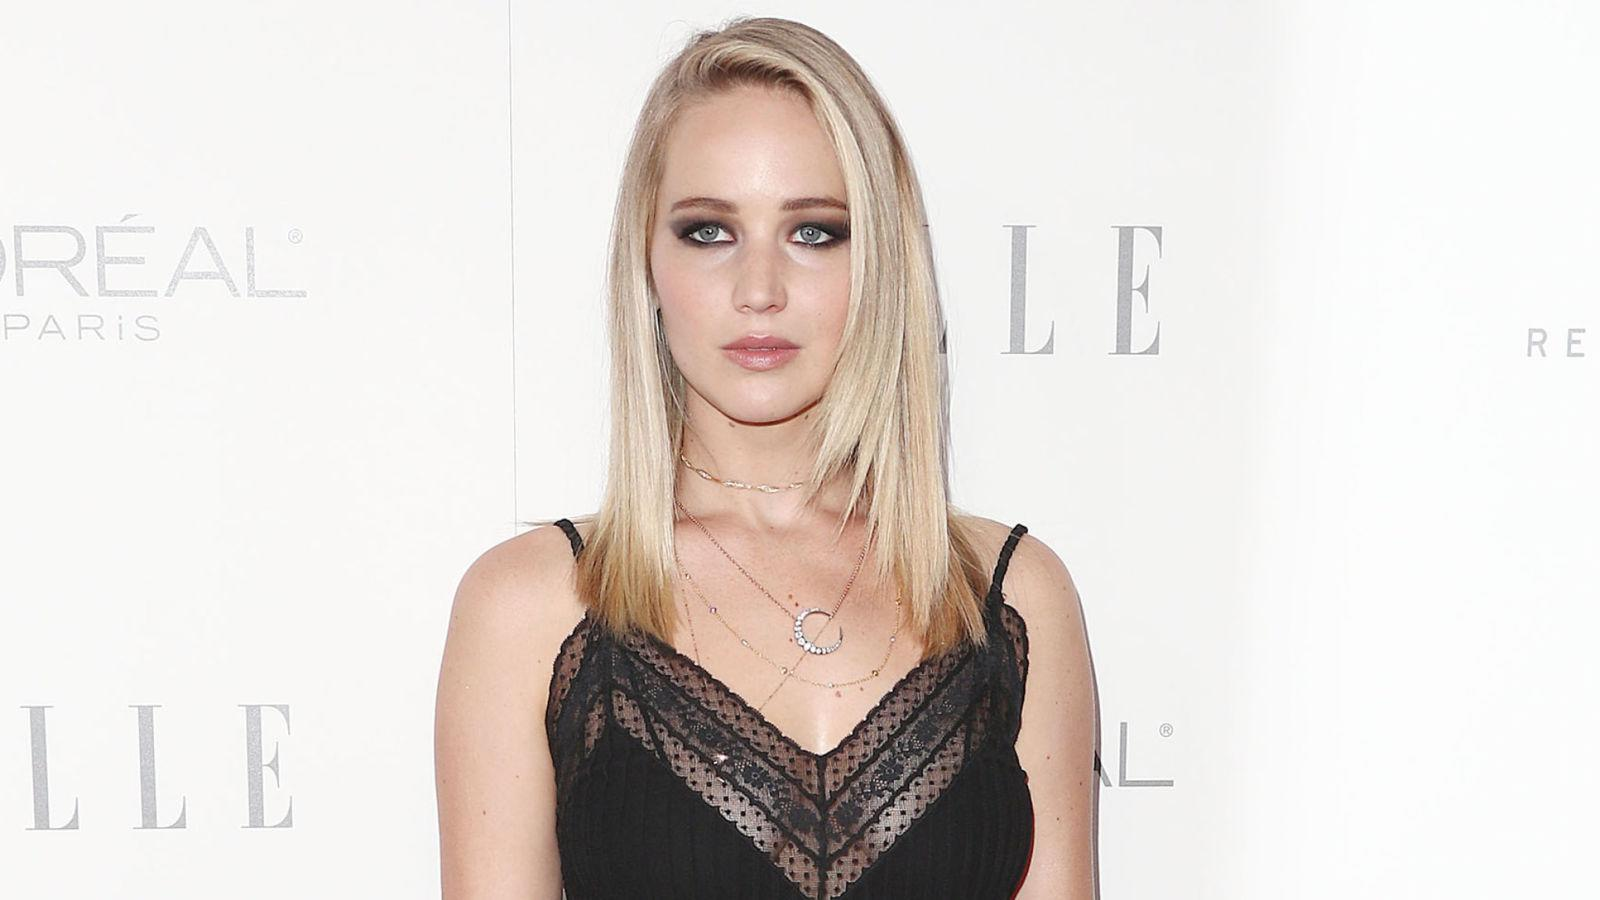 Jennifer Lawrence spoke about her experiences at the Elle: Women in Hollywood awards